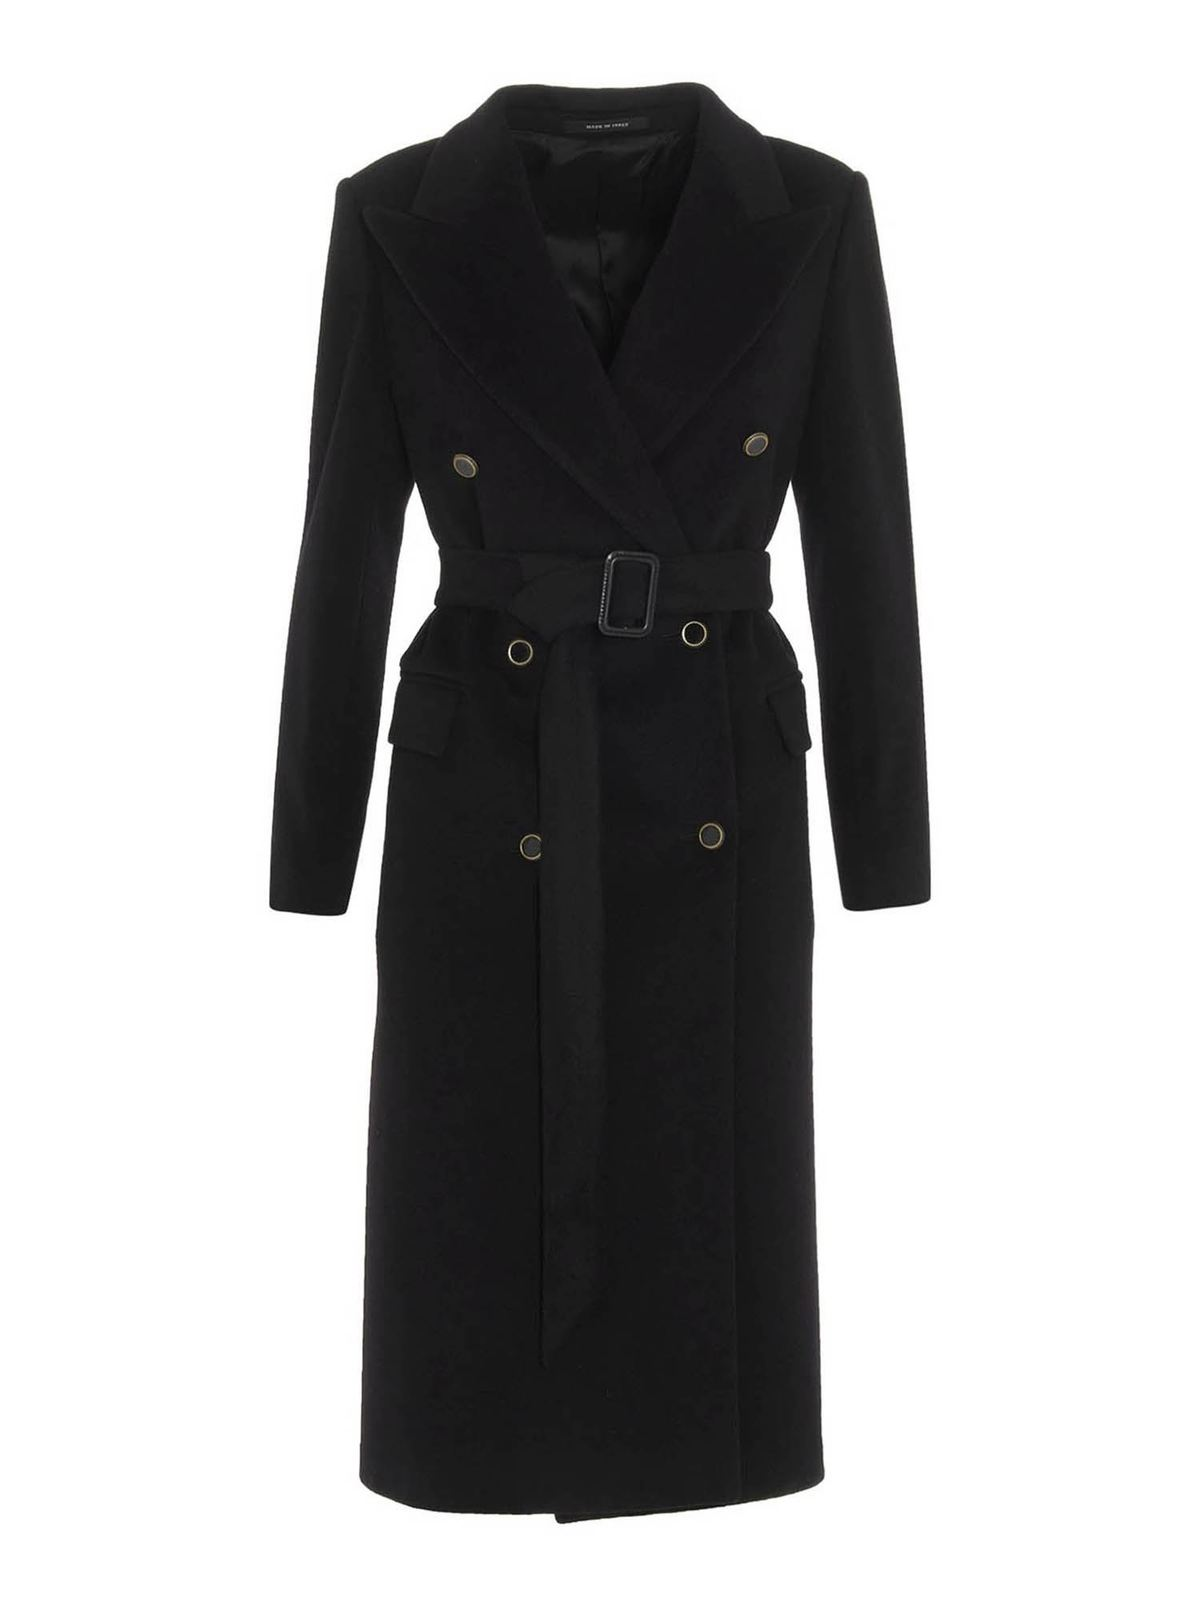 Tagliatore JOLE C COAT IN BLACK